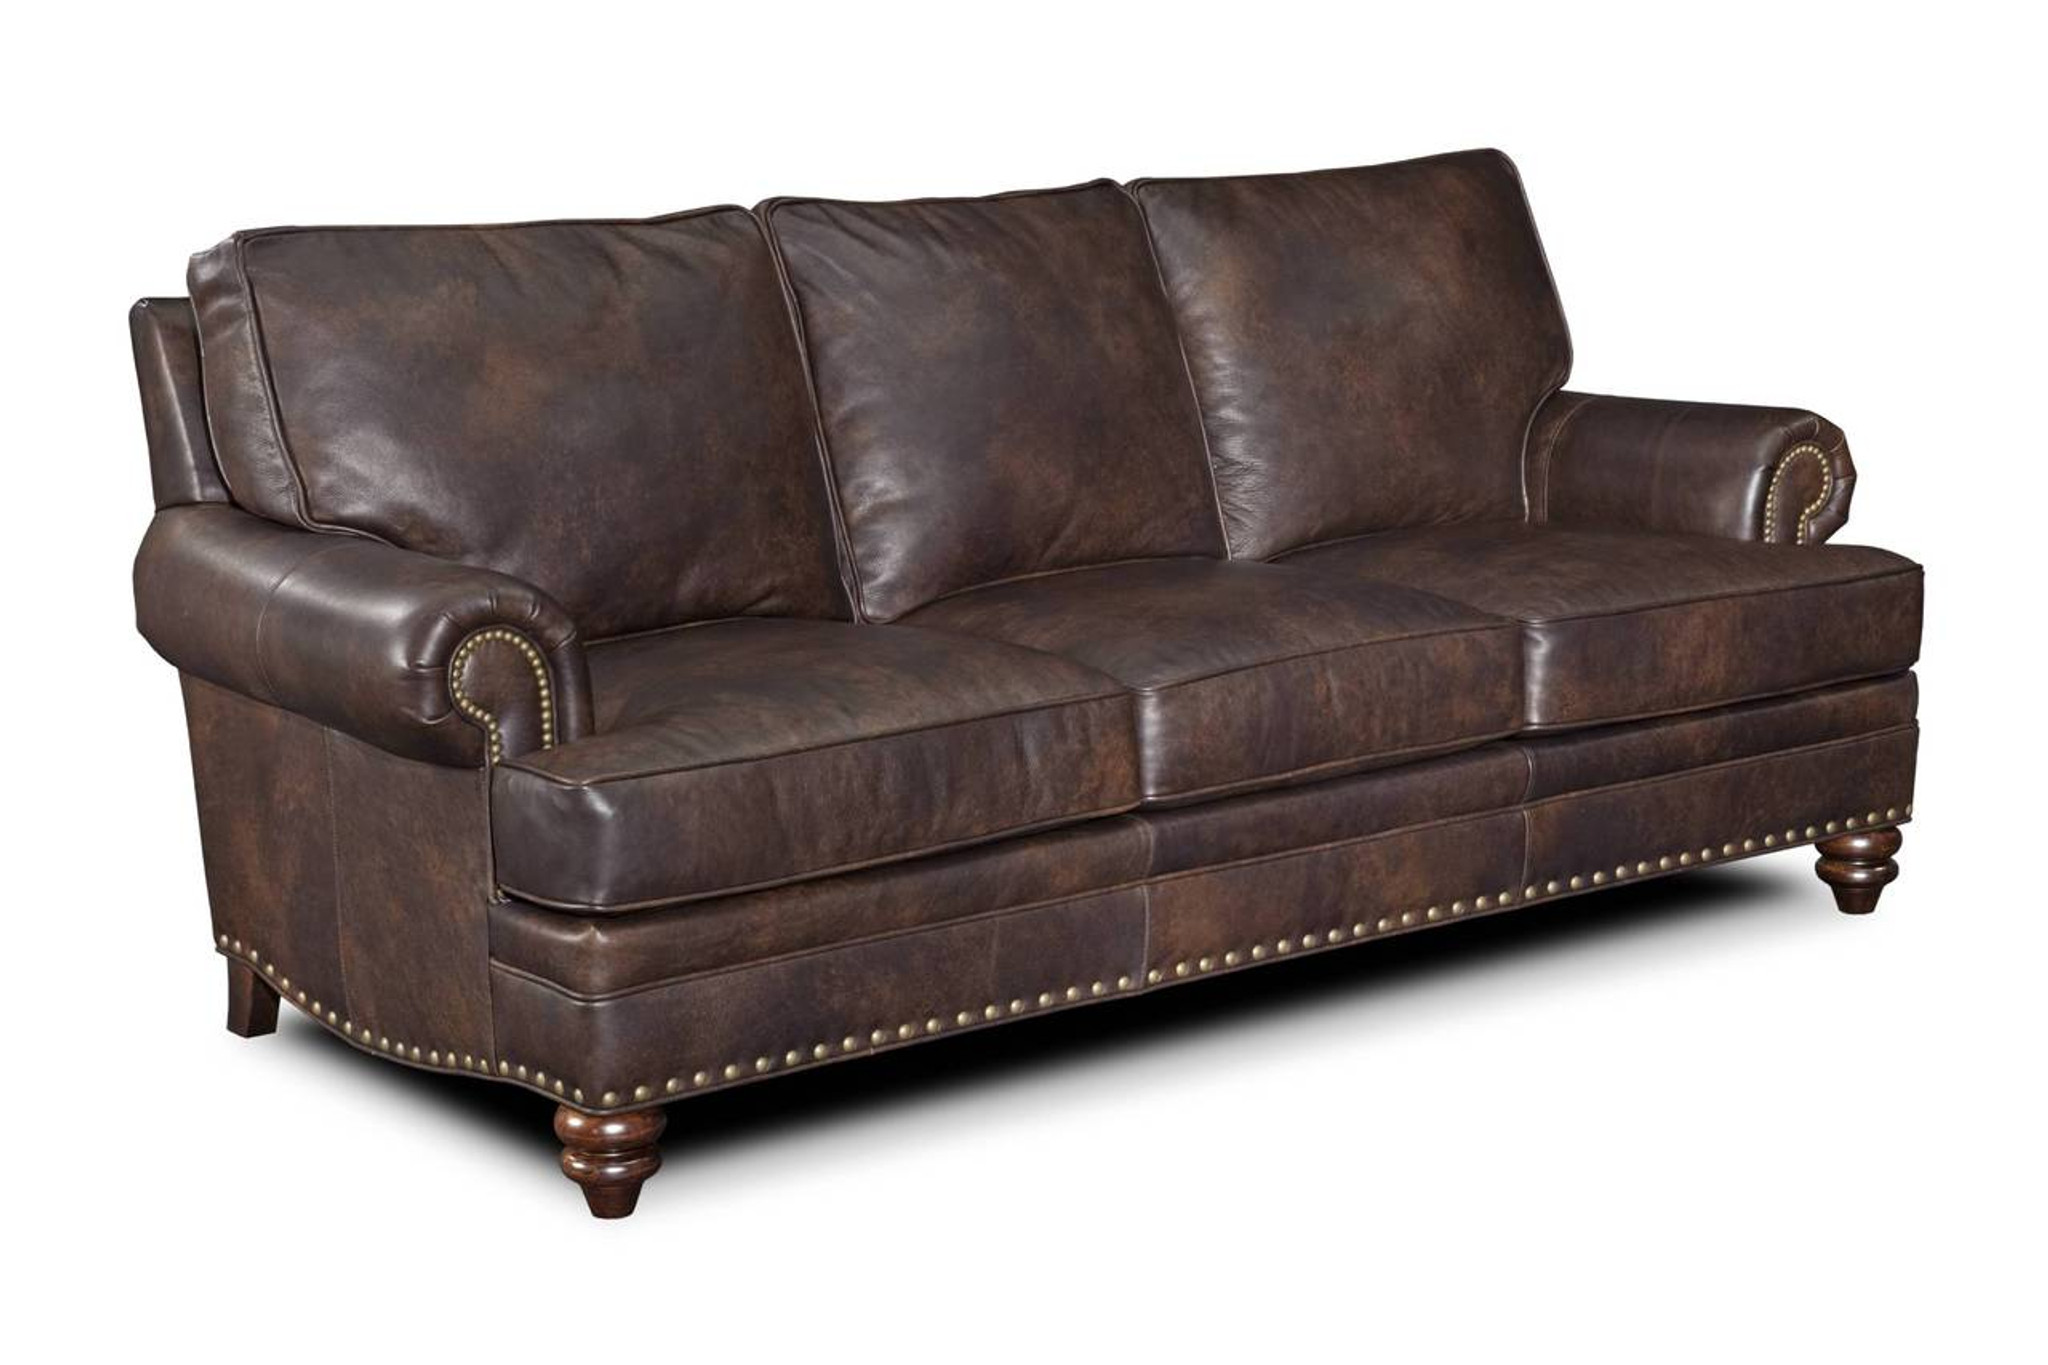 younger furniture sofa reviews serta convertible sam s club bradington young leather sofas for